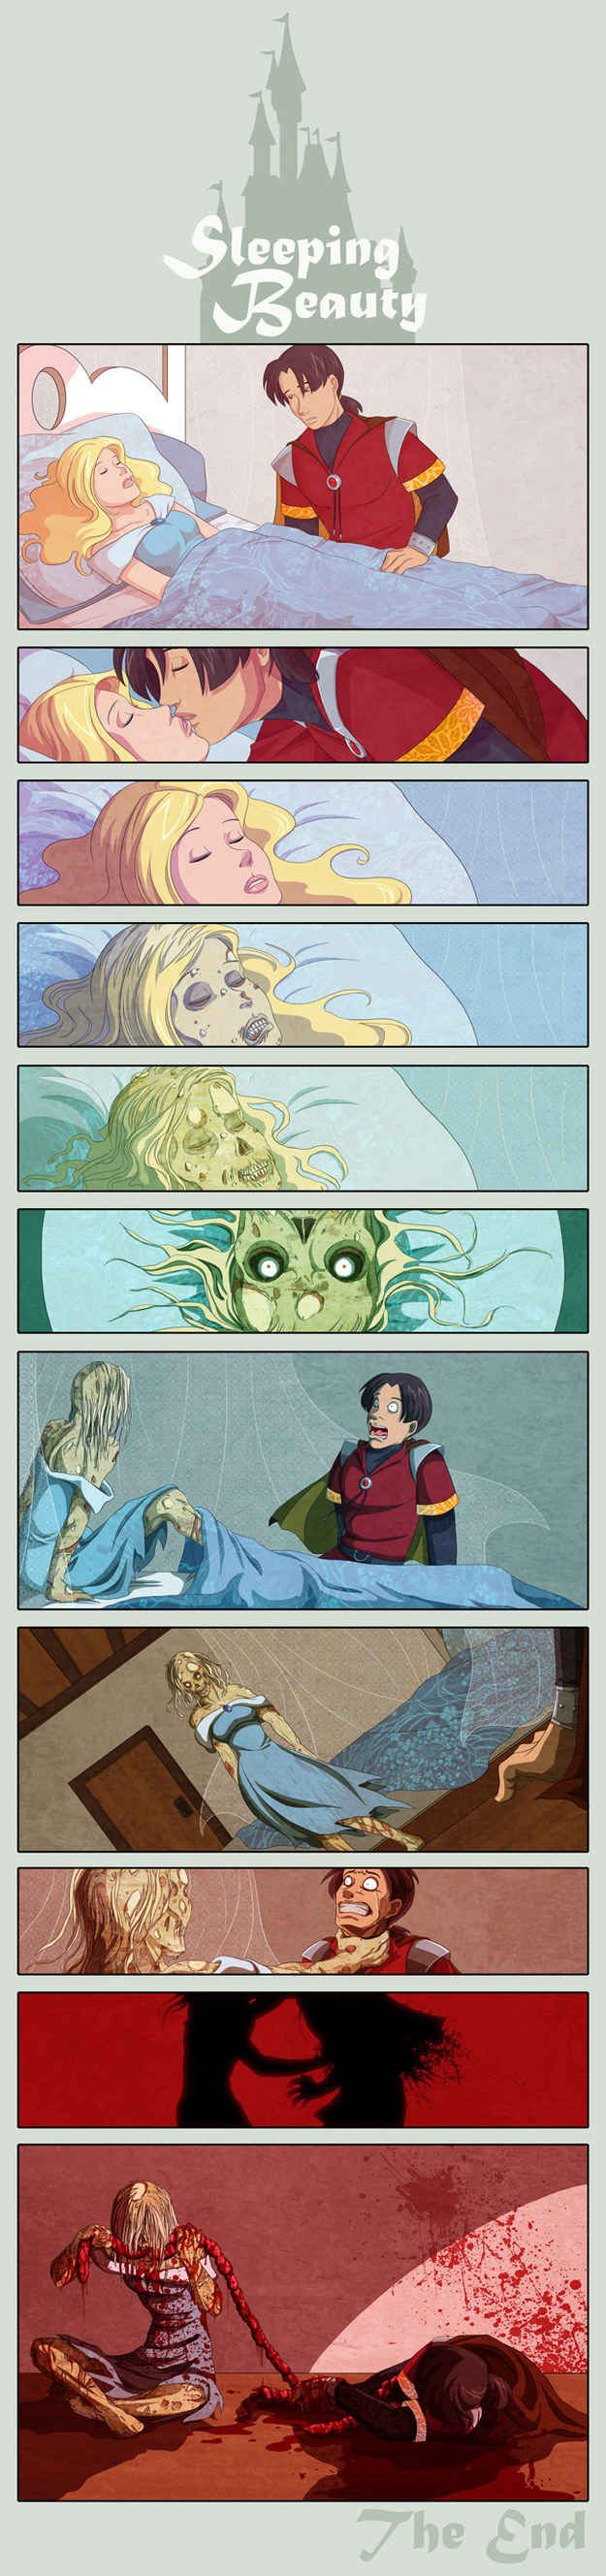 Once upon a time, in a land far away, there lived a Princess named Aurora...   Sleeping Beauty As A Zombie Will Destroy Your Childhood